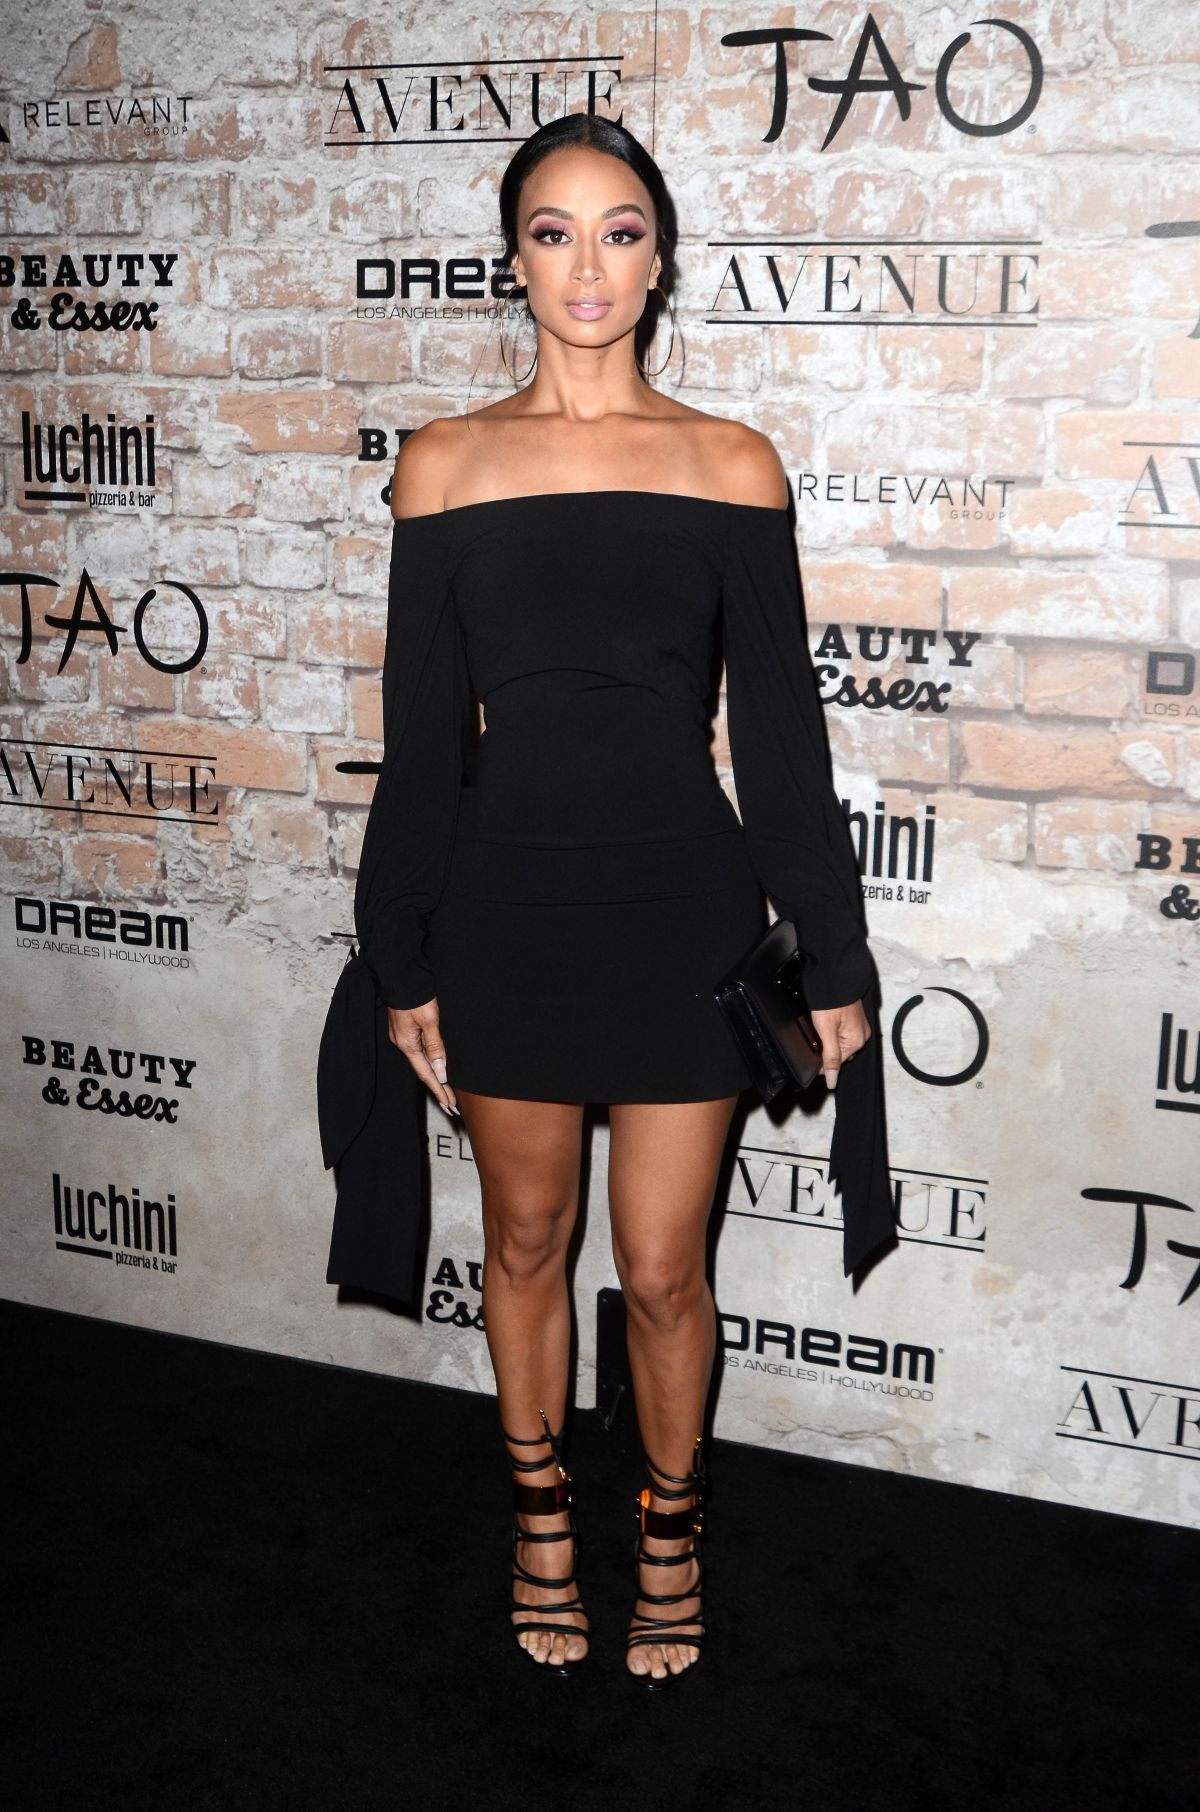 DRAYA MICHELE at Tao, Beauty + Essex, Avenue + Luchini La Grand Opening 03/16/2017